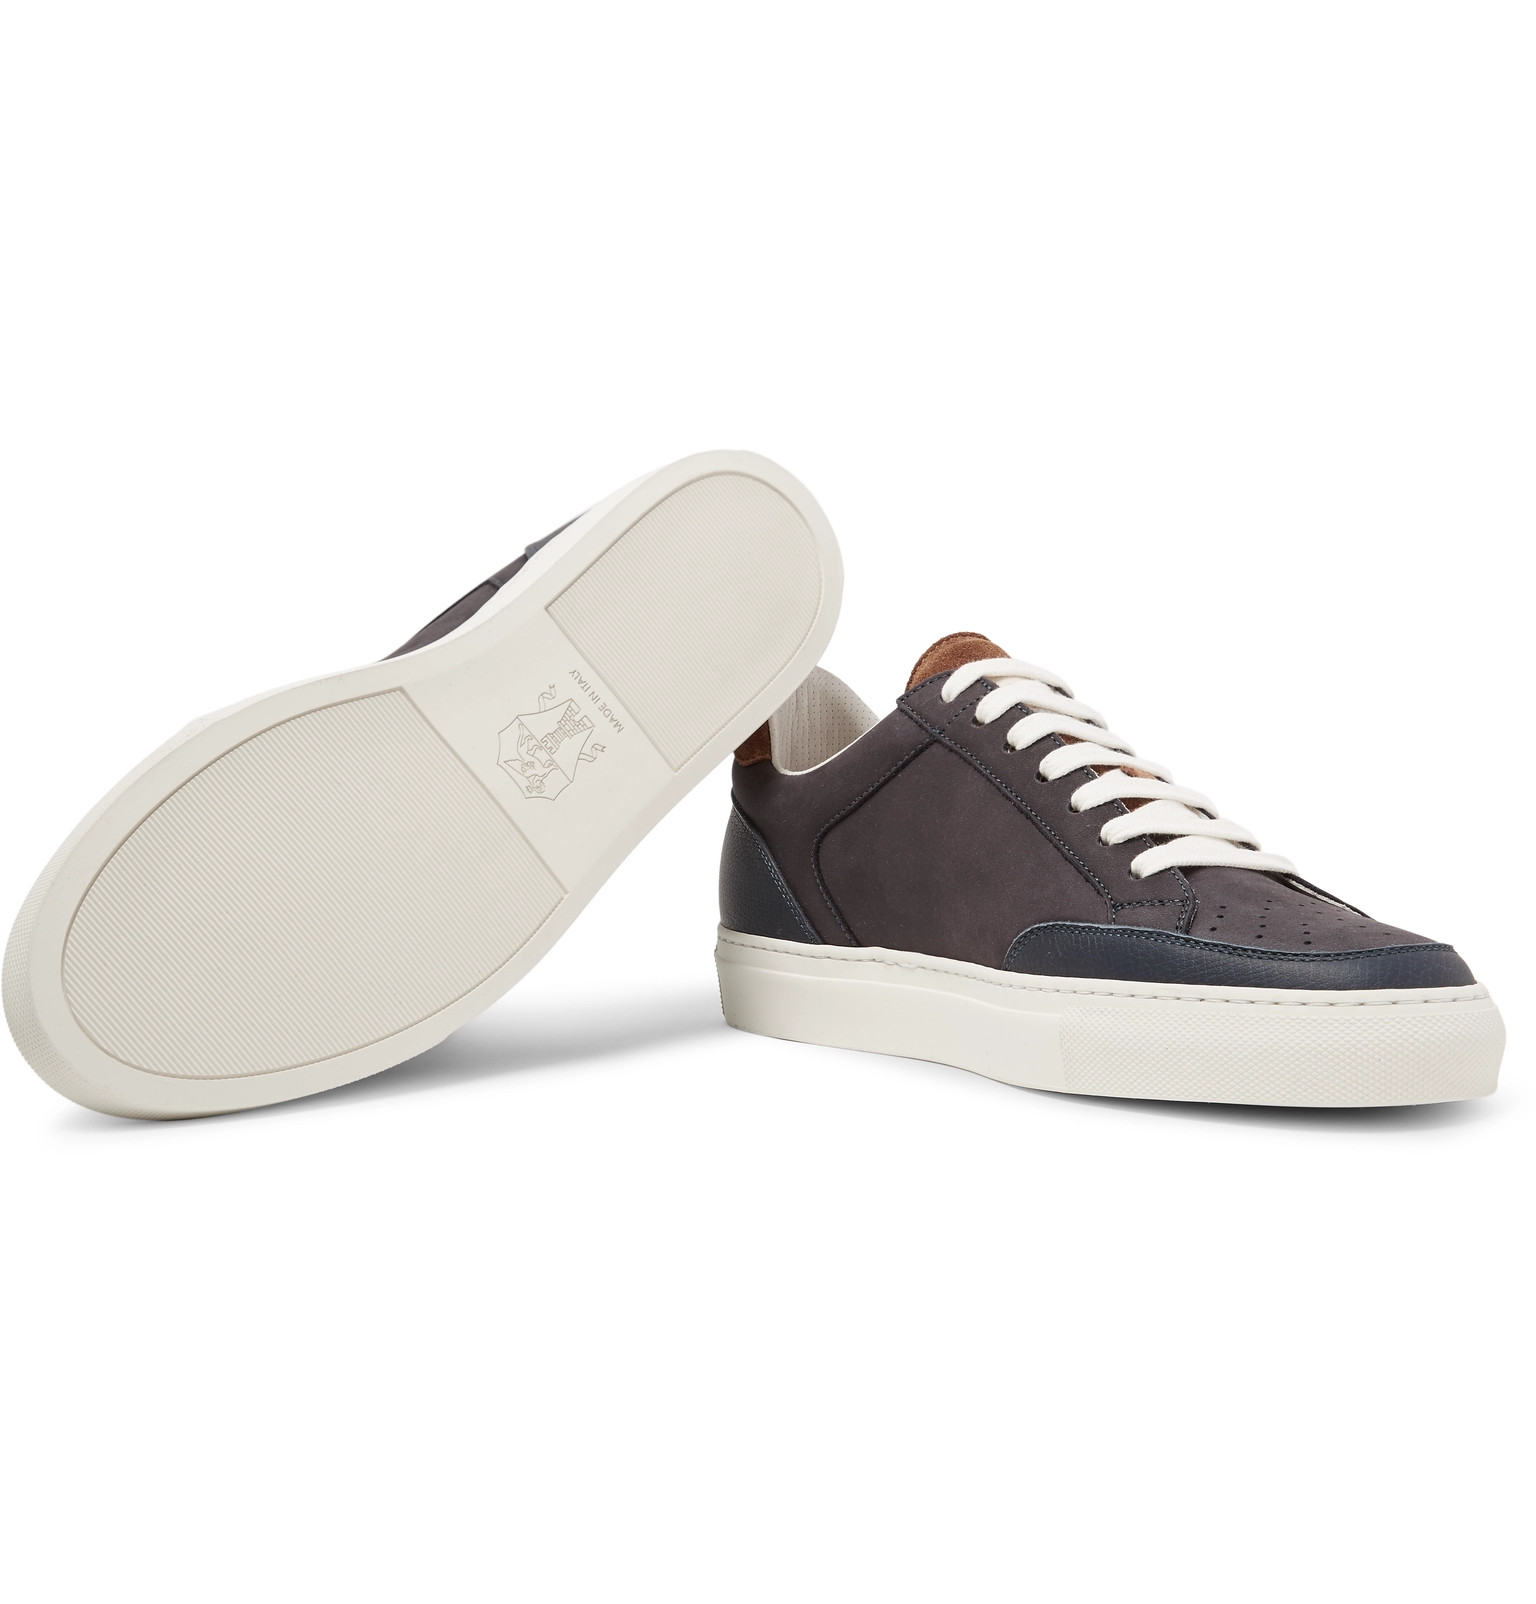 Sneakers Brunello Nubuck Cucinelli Leather Trimmed fTKKypIA